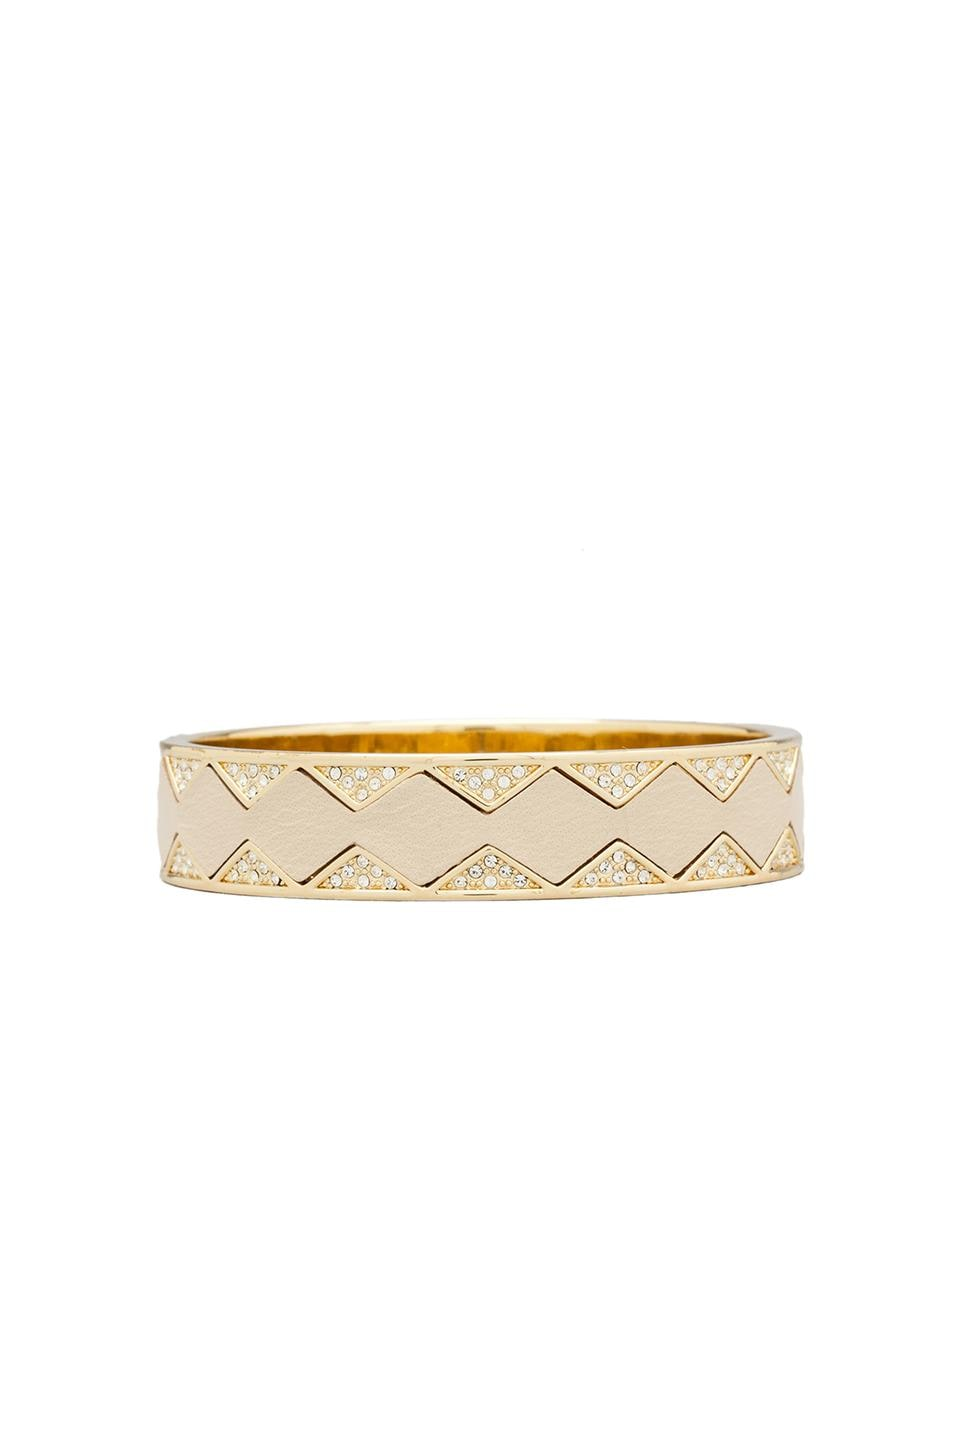 House of Harlow Sunburst Bangle in Gold Tone Cream